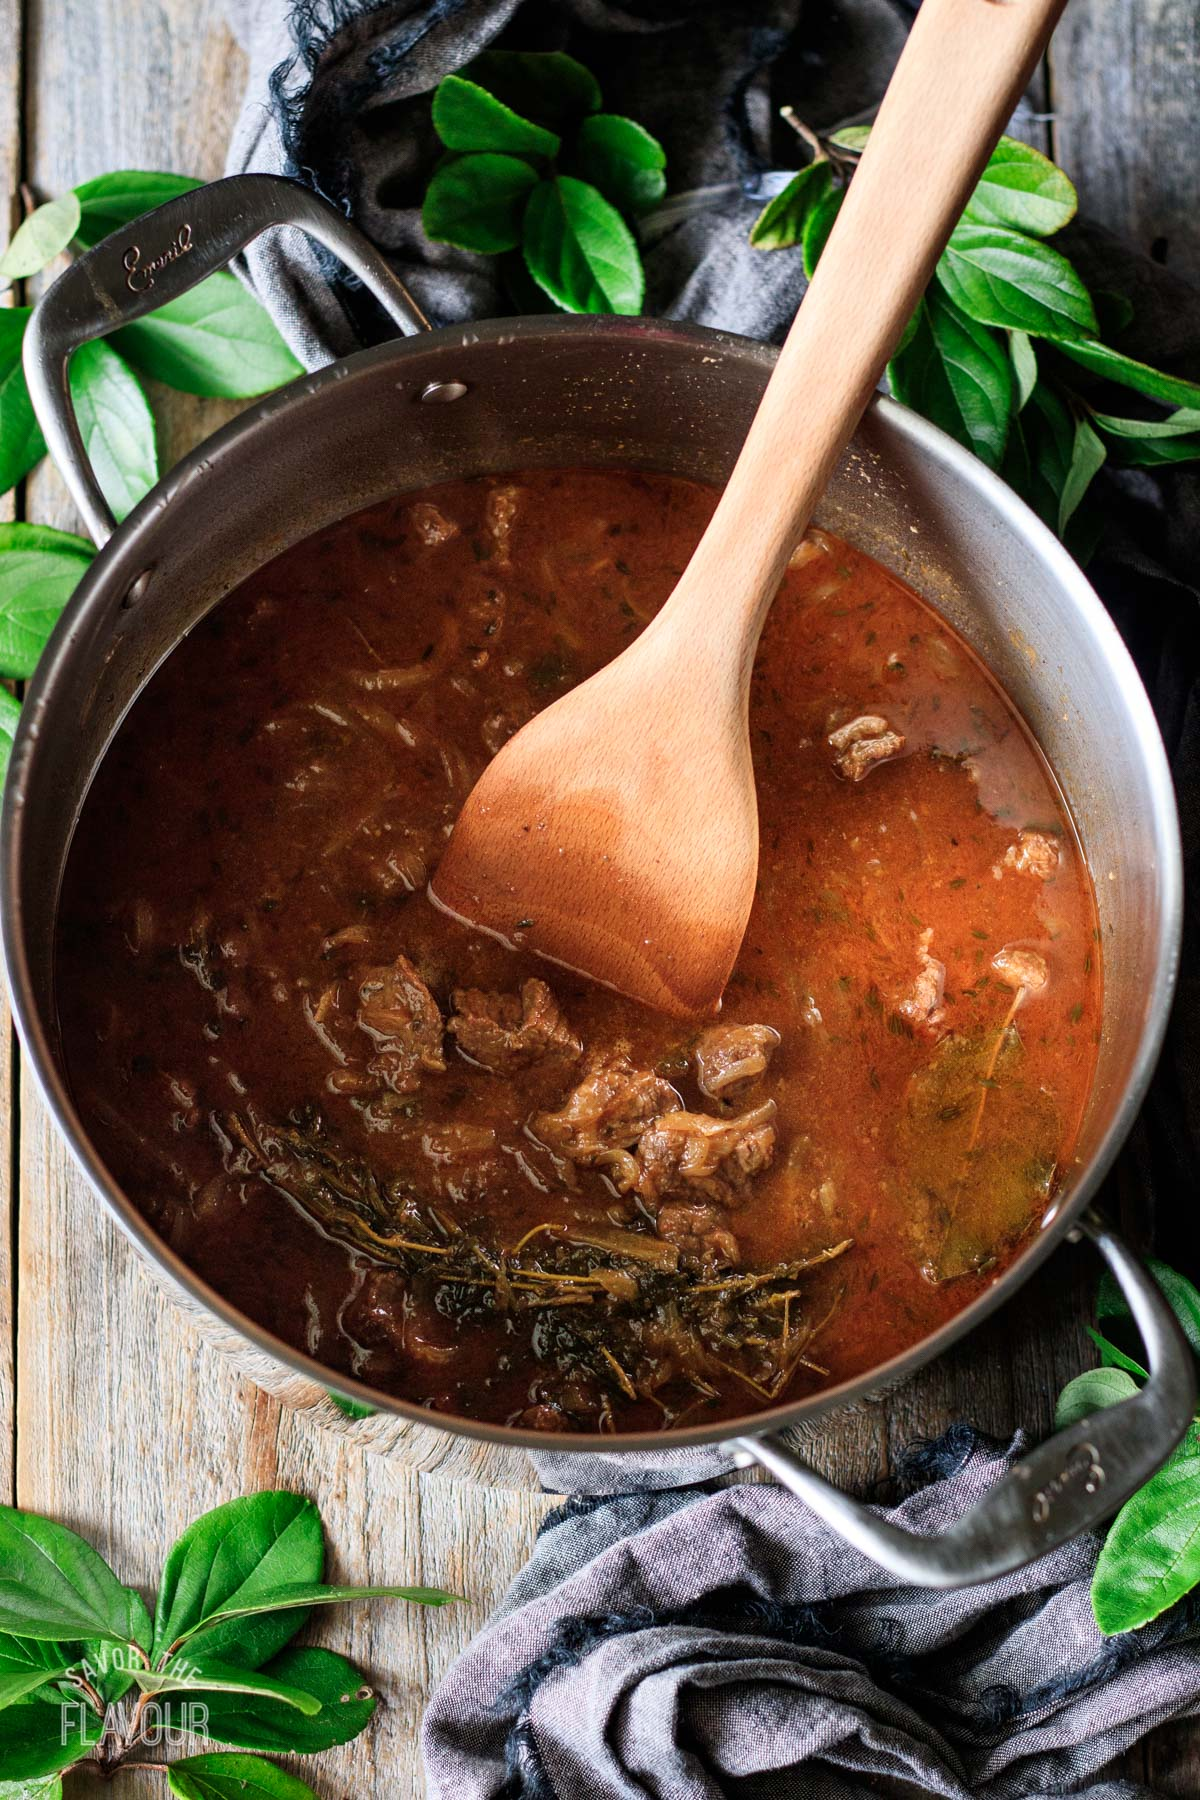 stirring cooked beef stew with a large wooden spoon